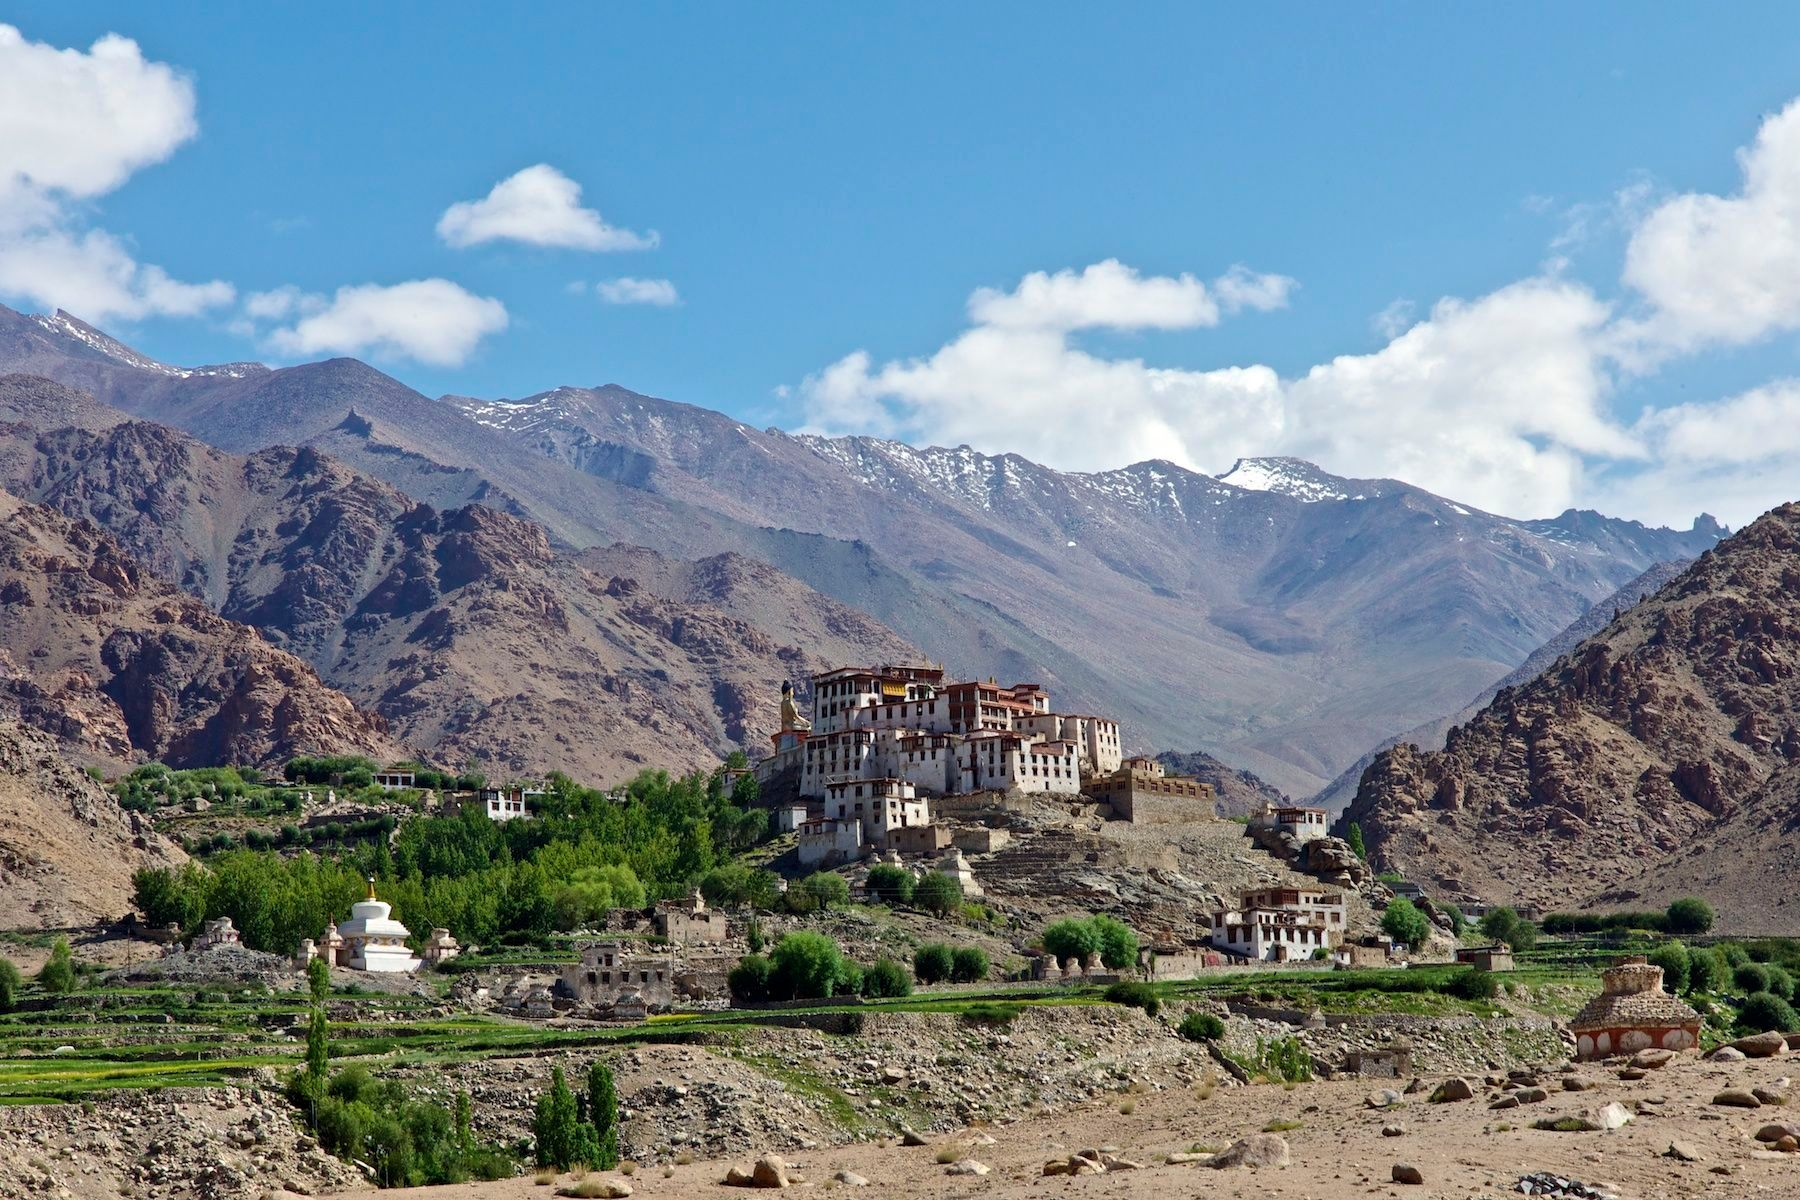 1the_likir_gompa__monastery__built_in_the_14th_century__ladakh__india.jpg